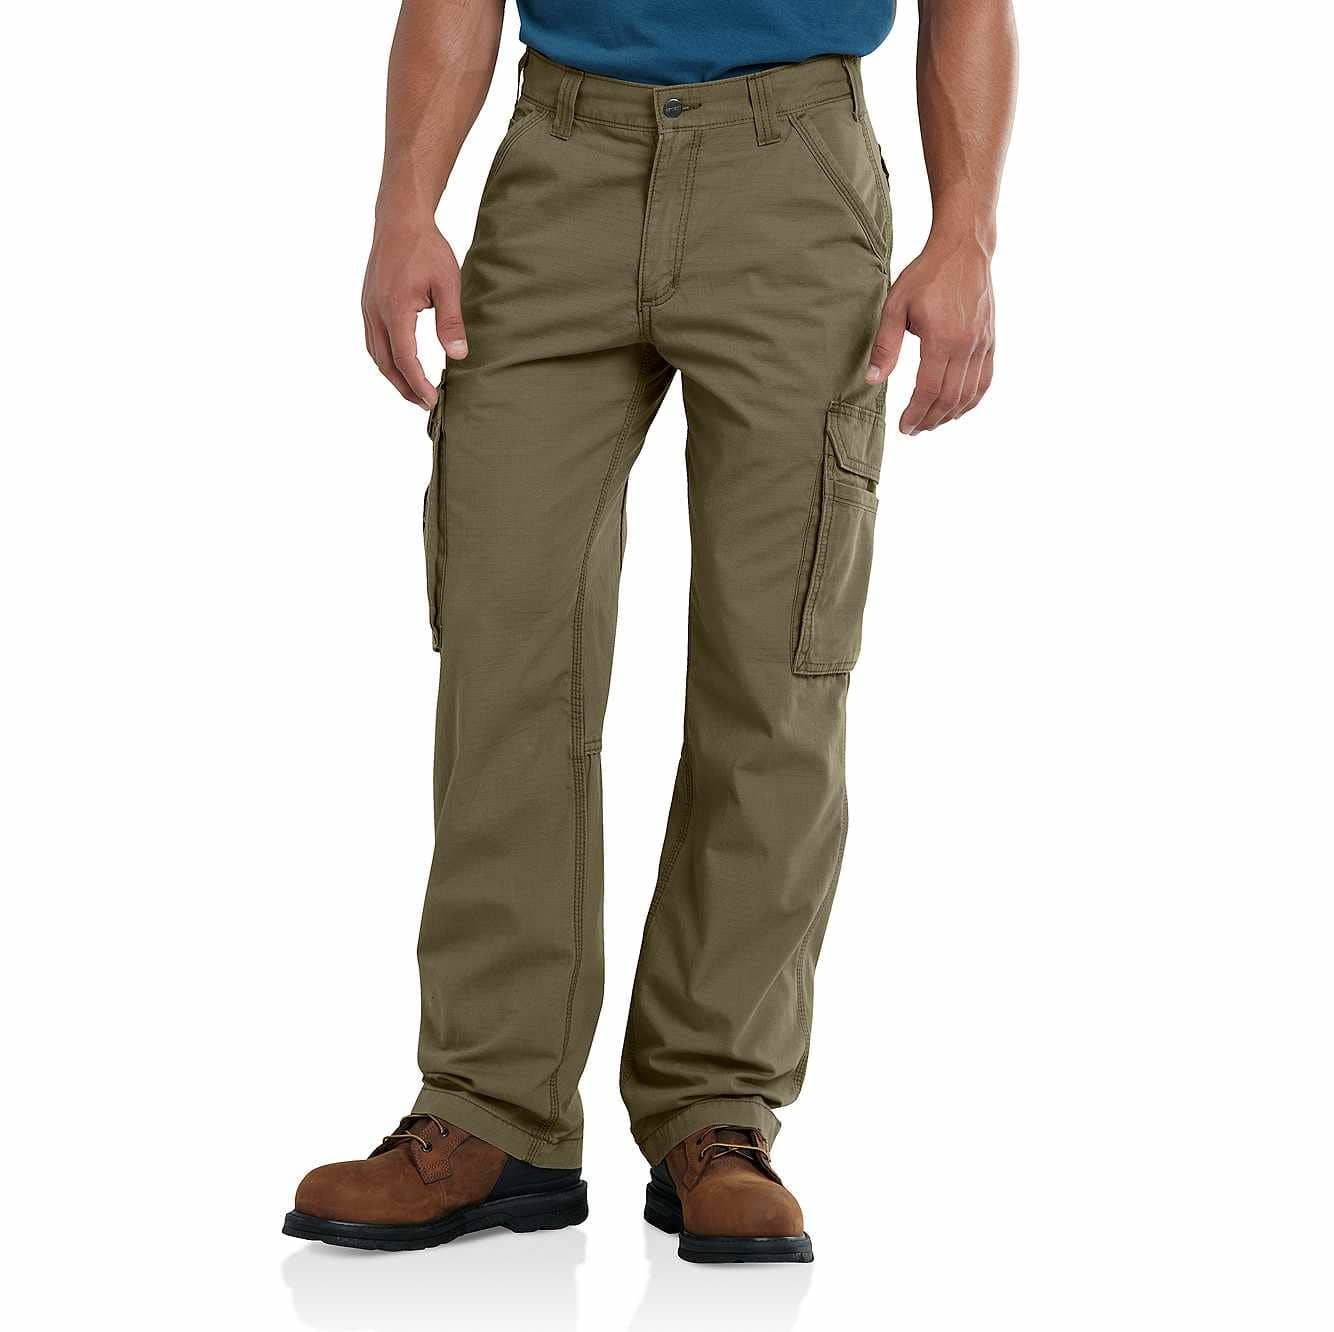 Picture of Carhartt Force® Tappen Cargo Pant in Burnt Olive